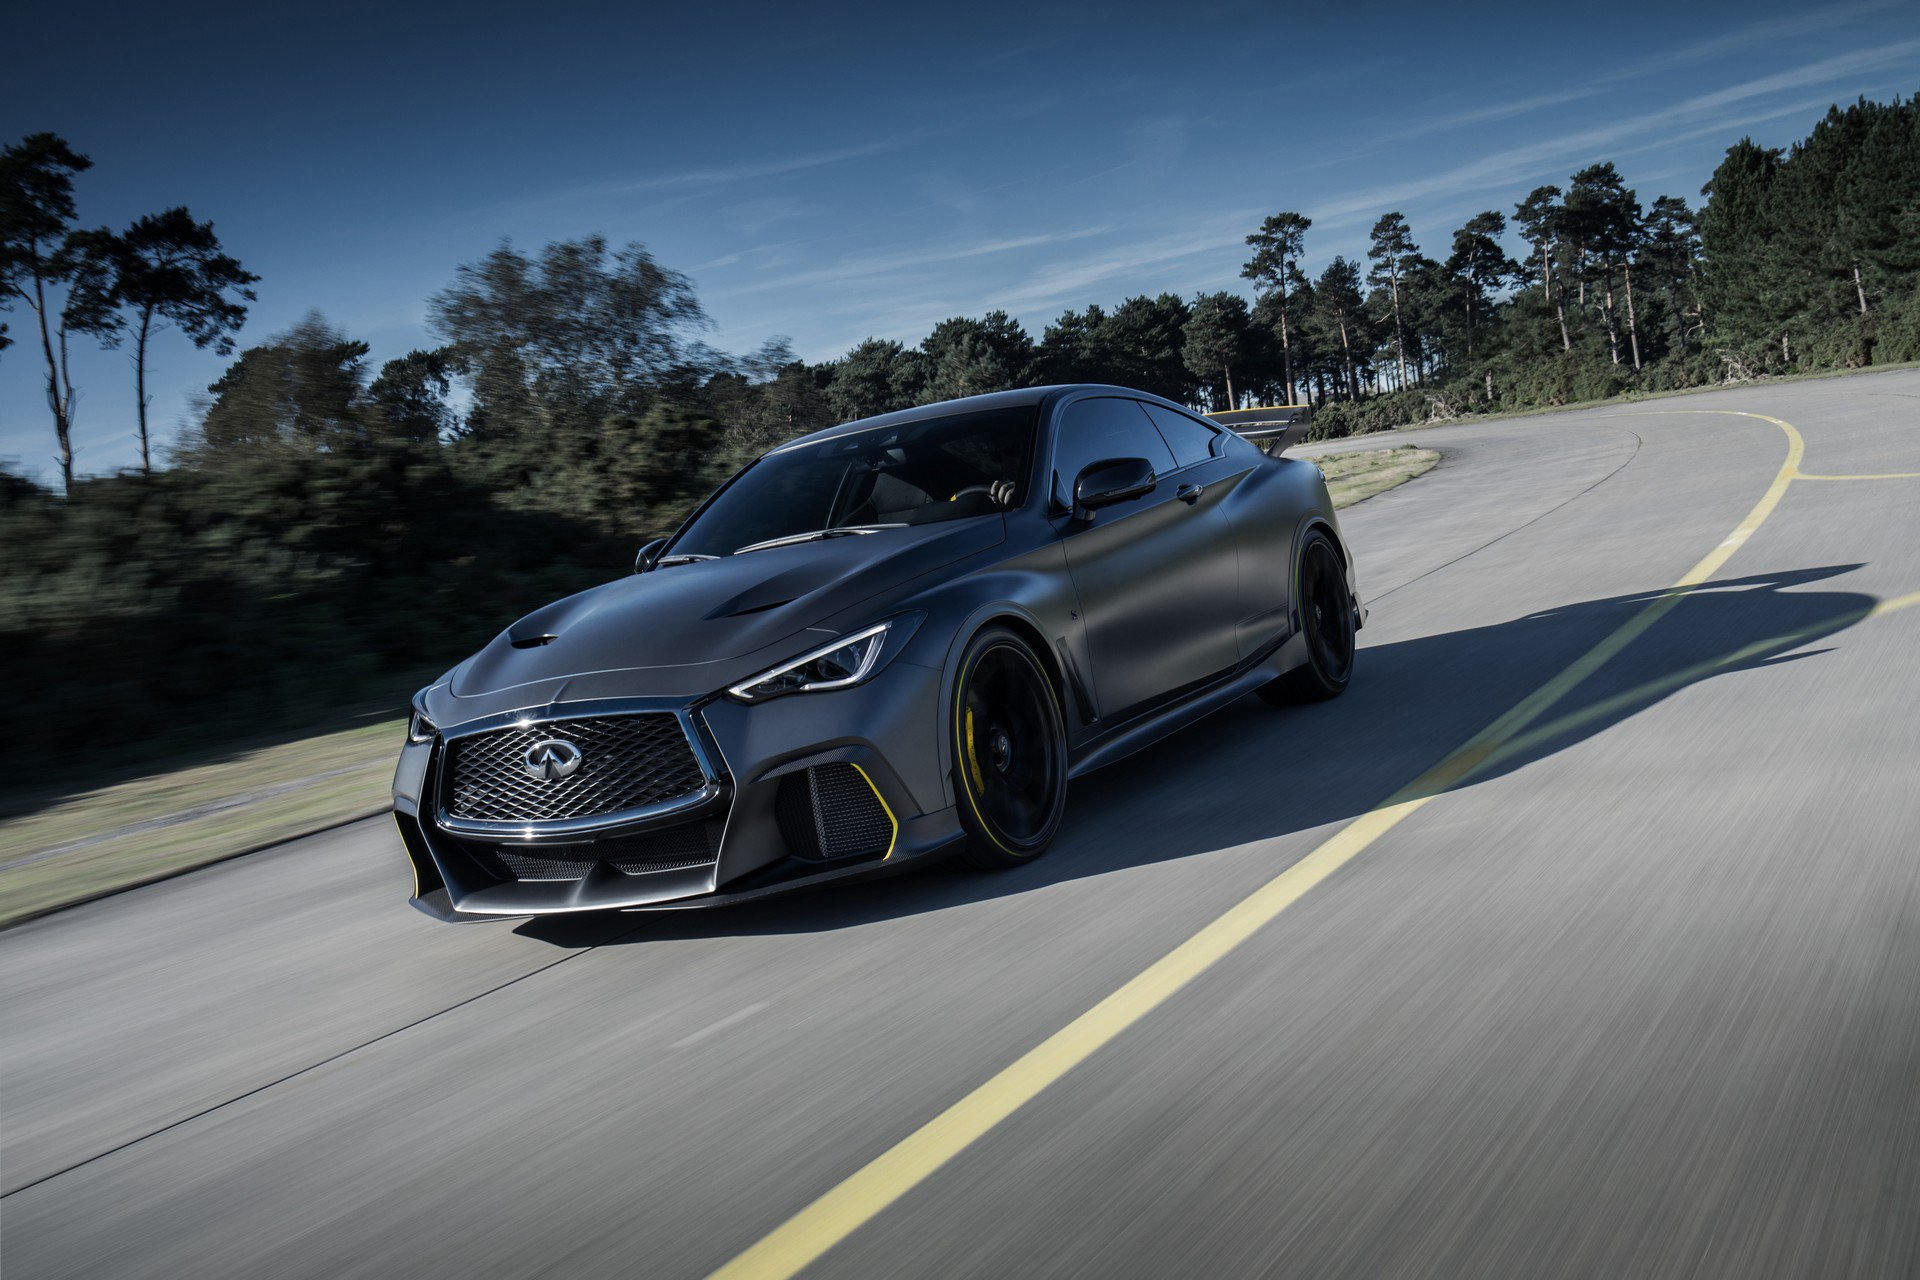 Infiniti Project Black S Prototype (28)